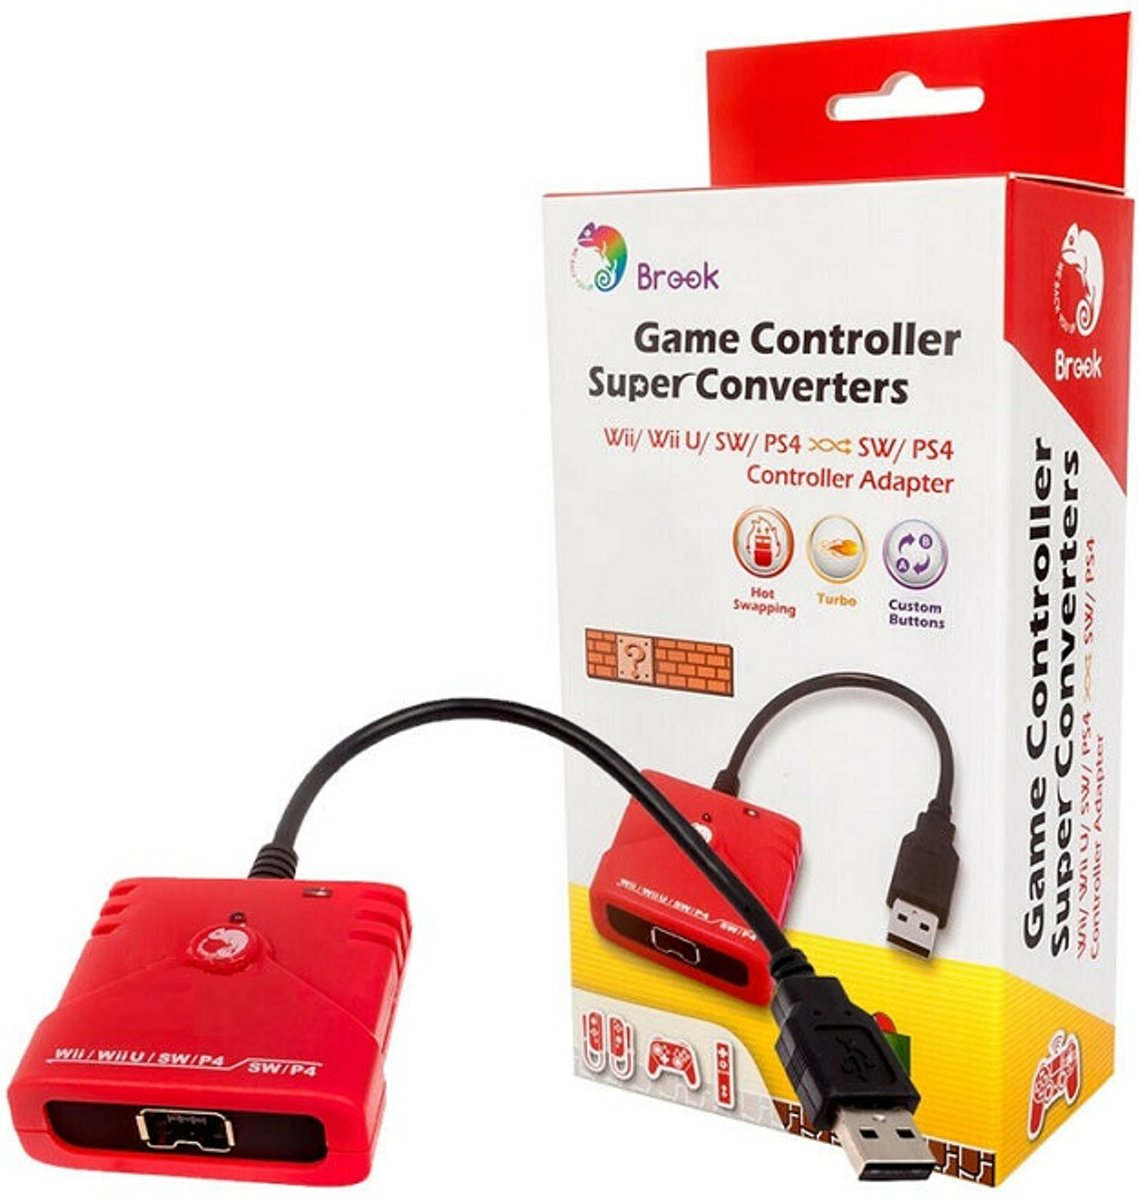 Wii/Wii-U/SW/PS4 to SW/PS4   Super Converter Adapter